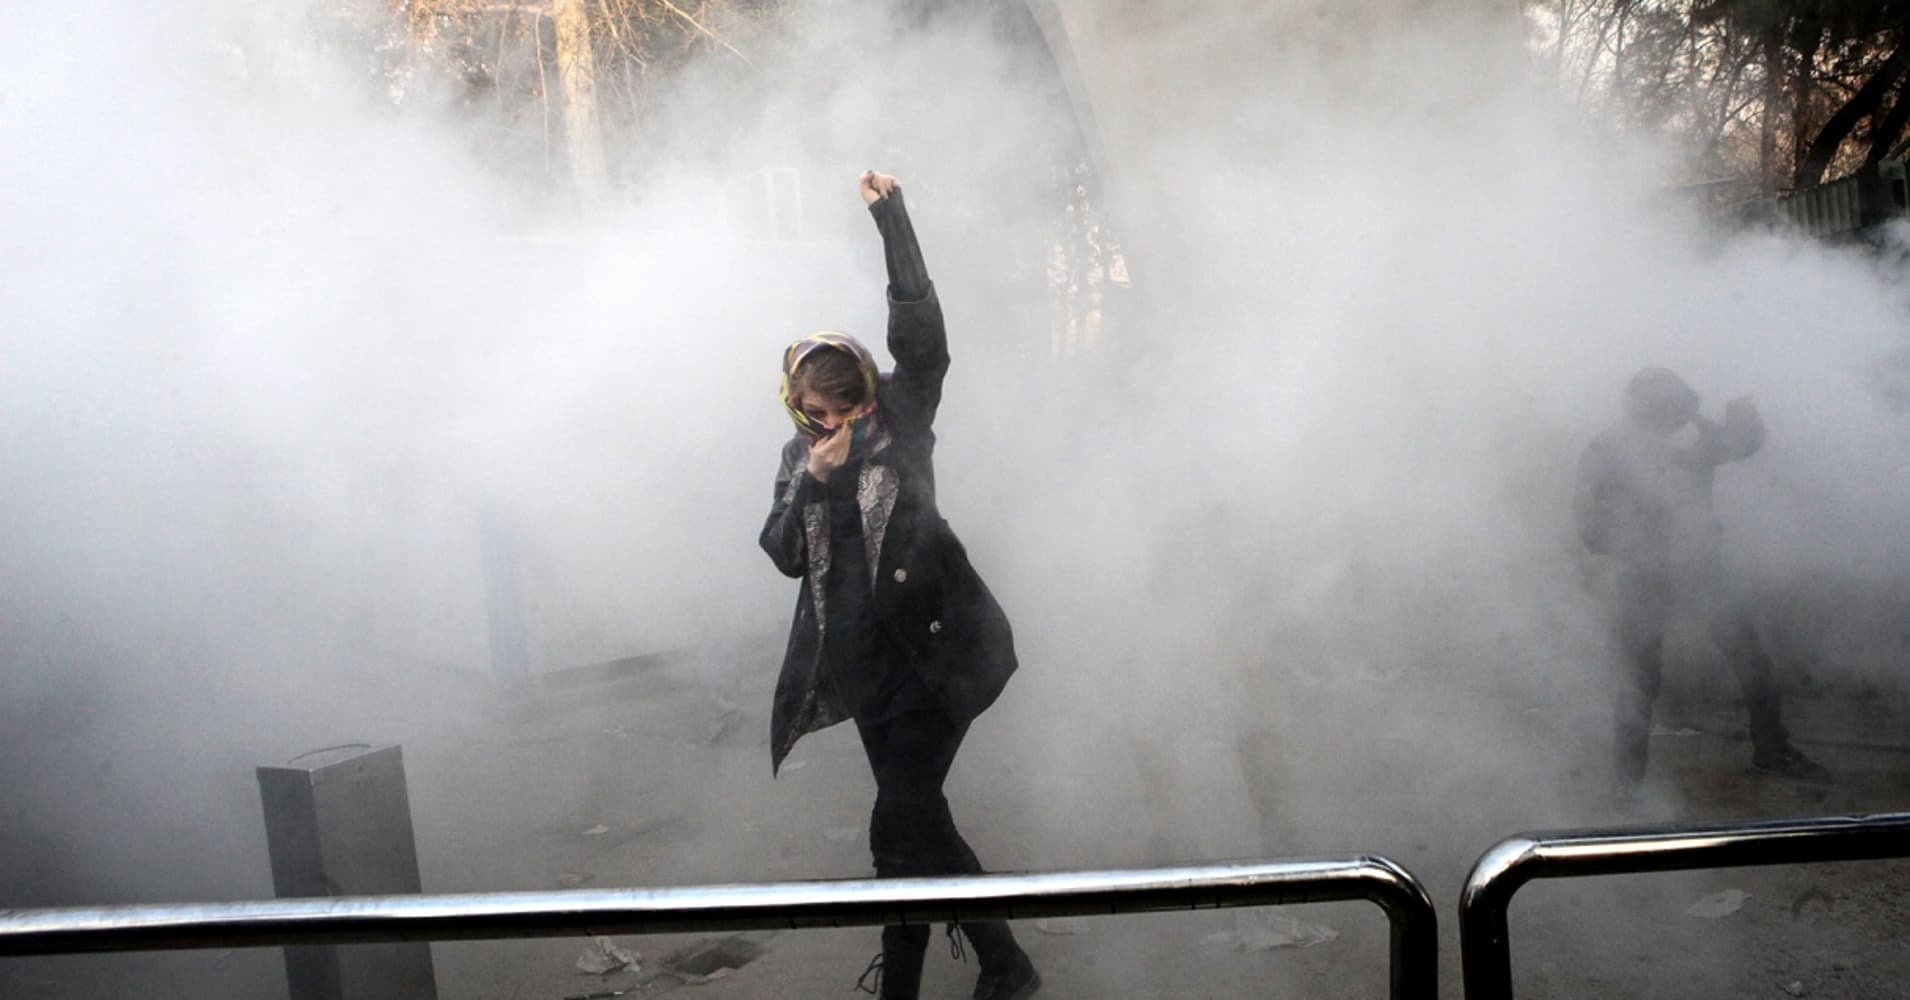 Iran protest Map of the worst clashes